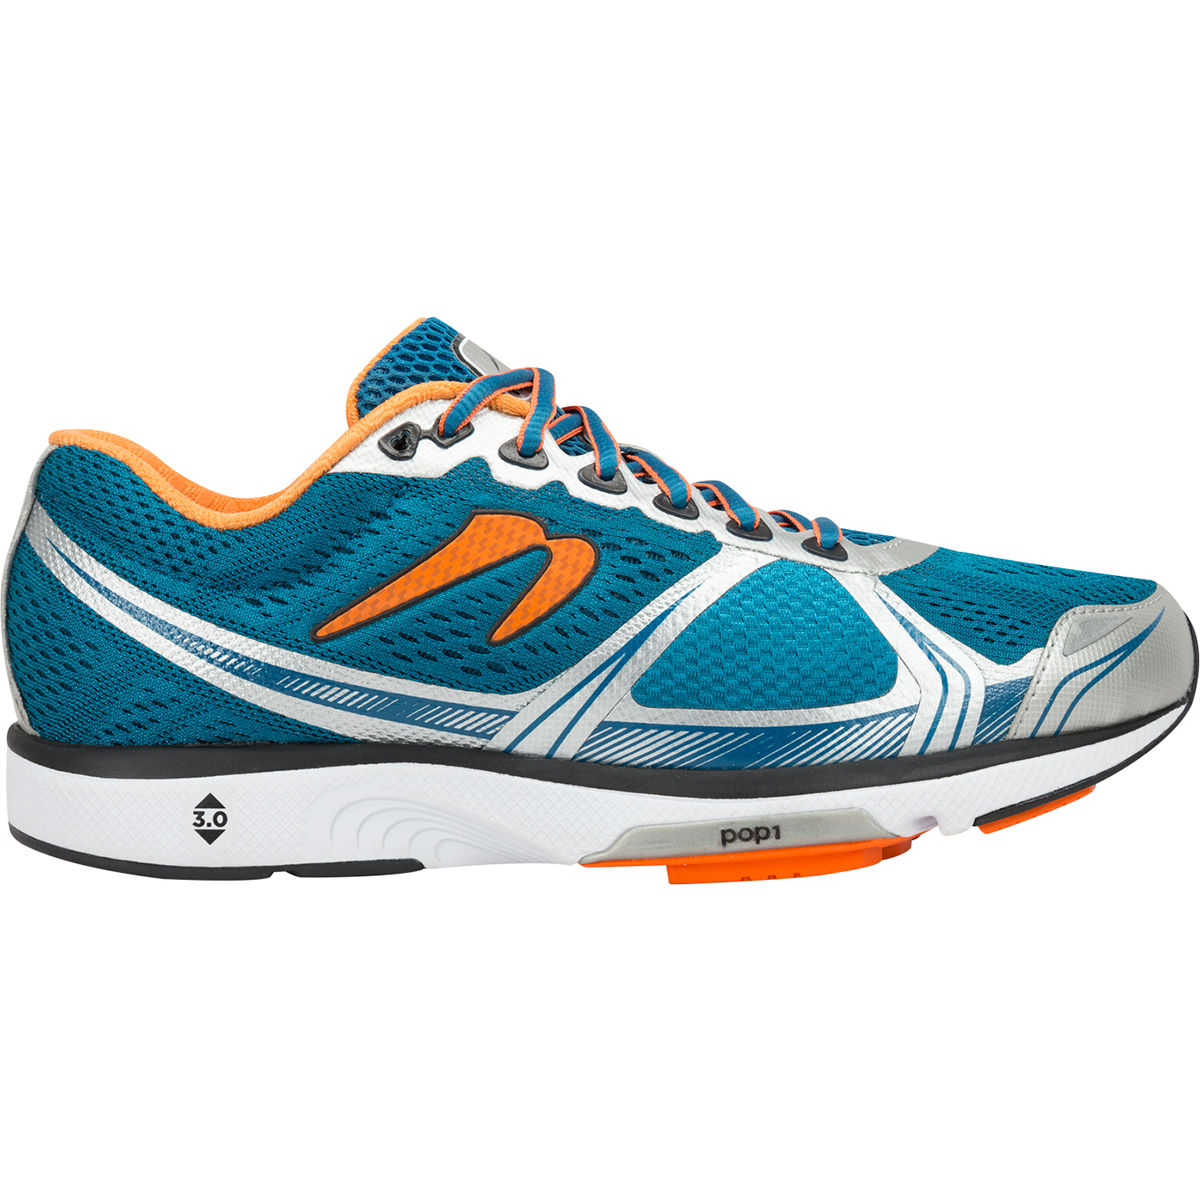 This is a running shoe for me, not an all day shoe. That being said, they are comfortable if I were to wear them outside of running. They are slightly wide for my foot but I knew that going in - .